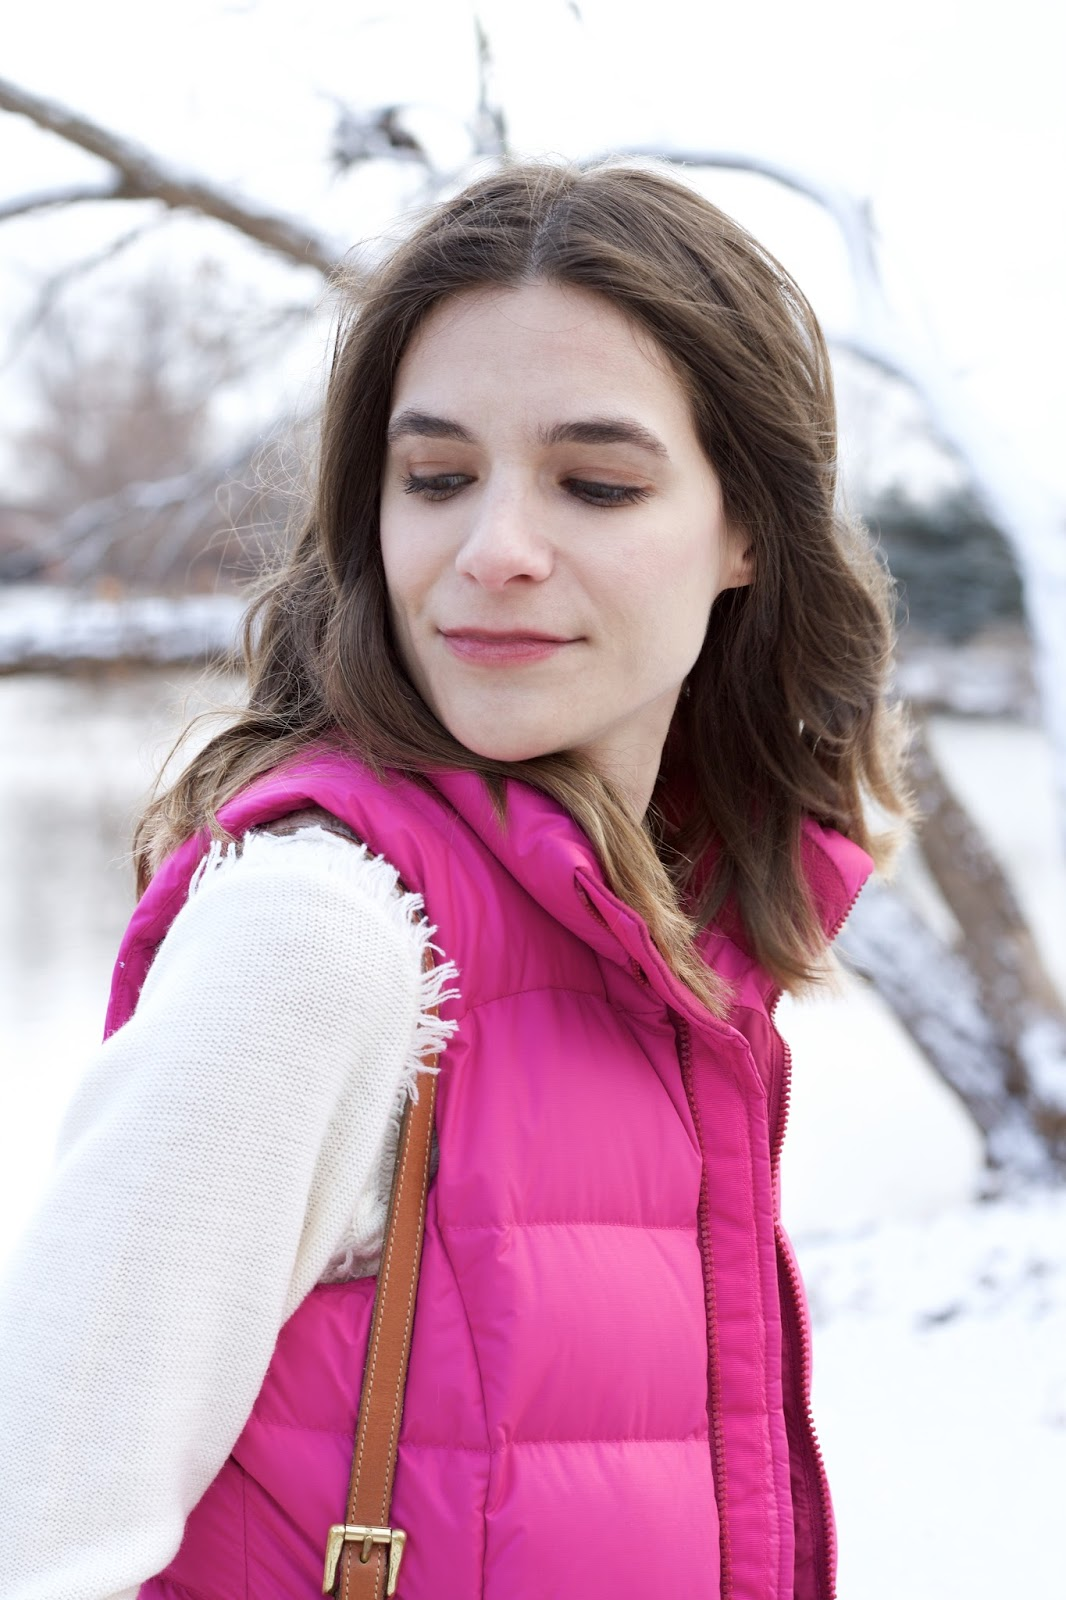 Brightly colored winter vest